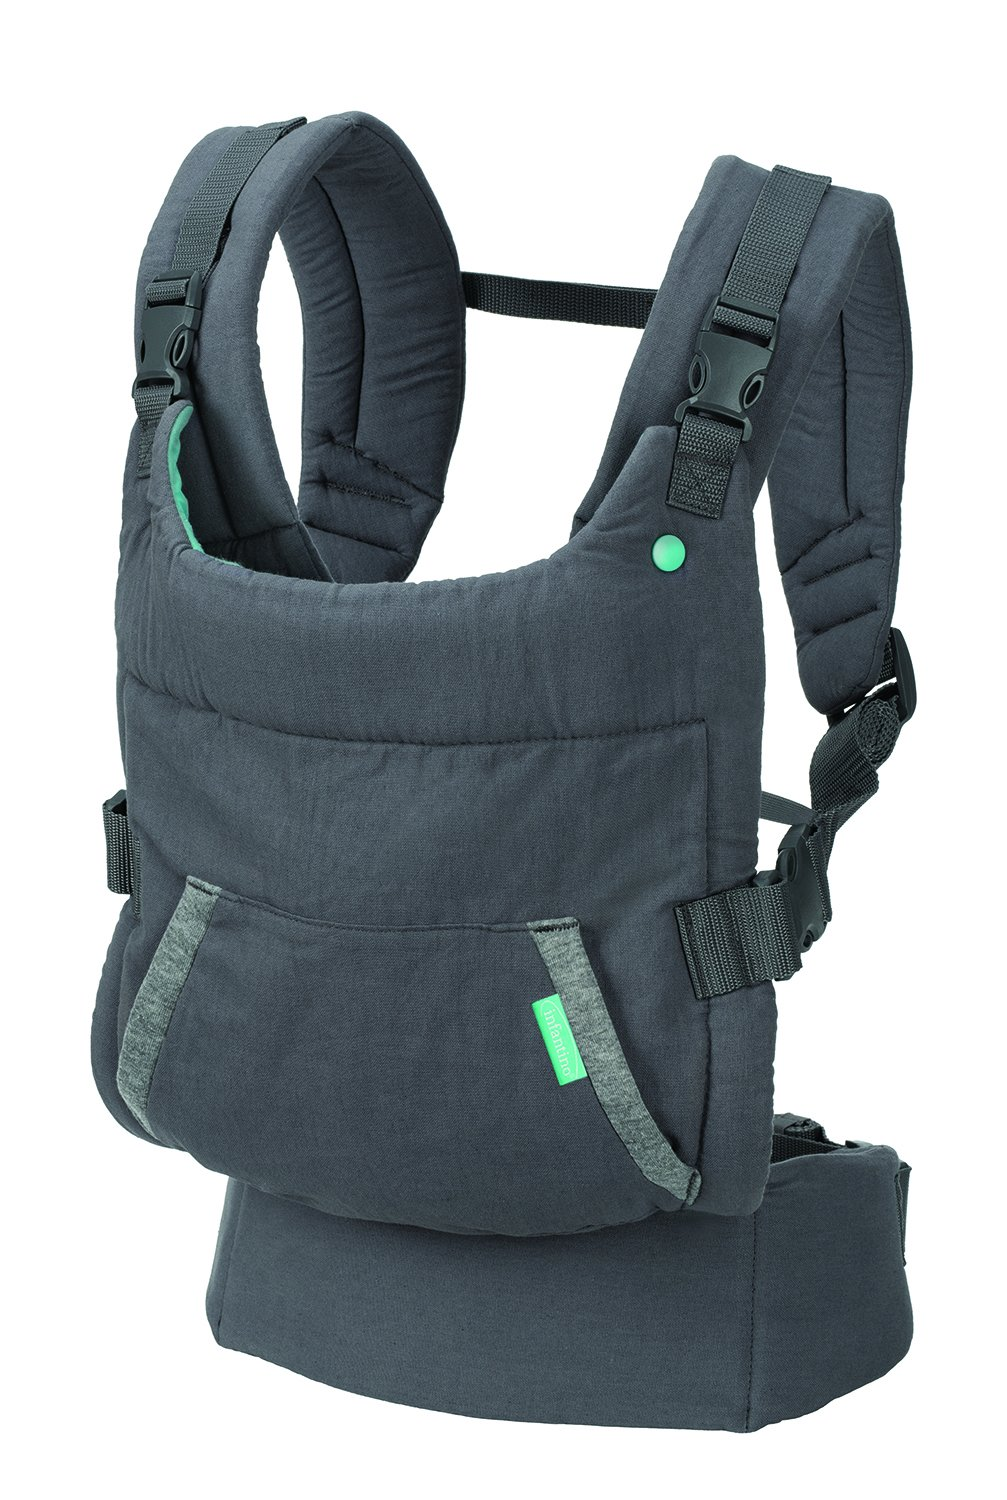 Infantino Cuddle Up Ergonomic Hoodie Carrier, Grey Infantino Fully safety tested Carries children from 12-40lbs (5.4 - 18.1 kgs) 2